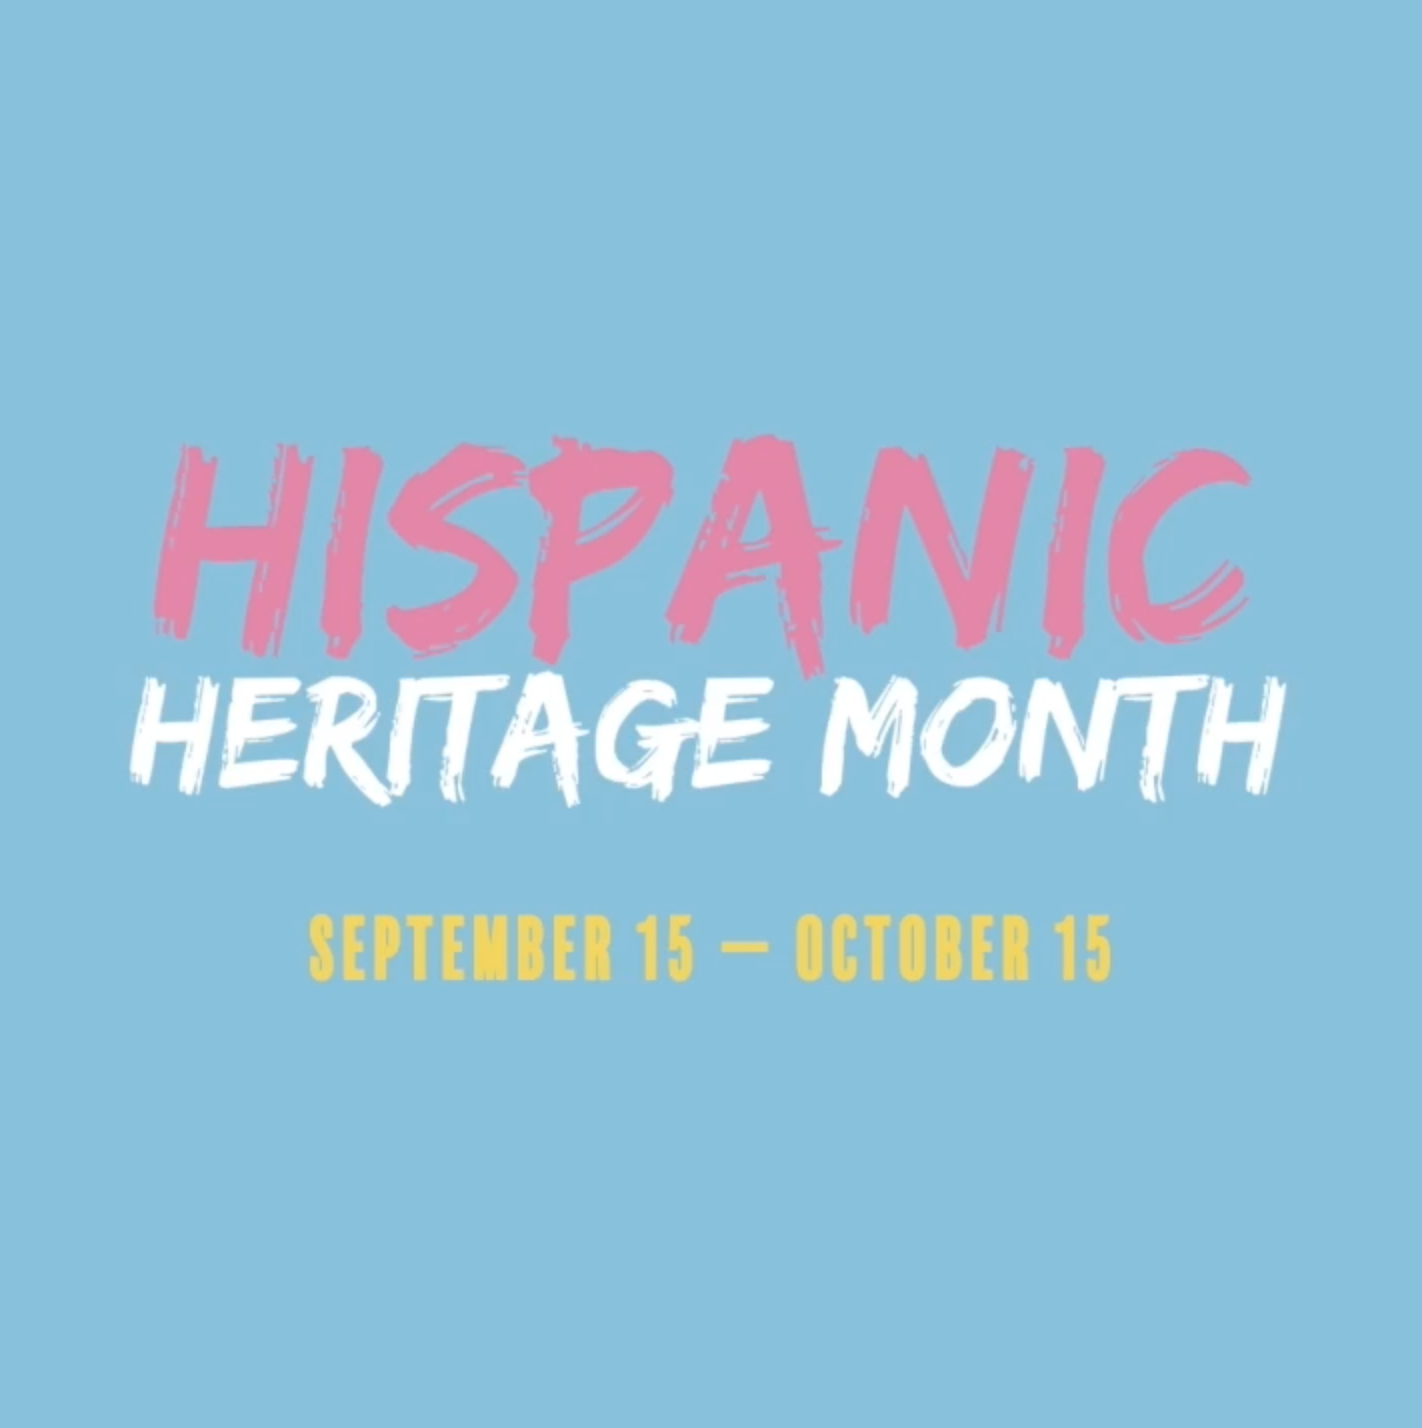 Hispanic Featured